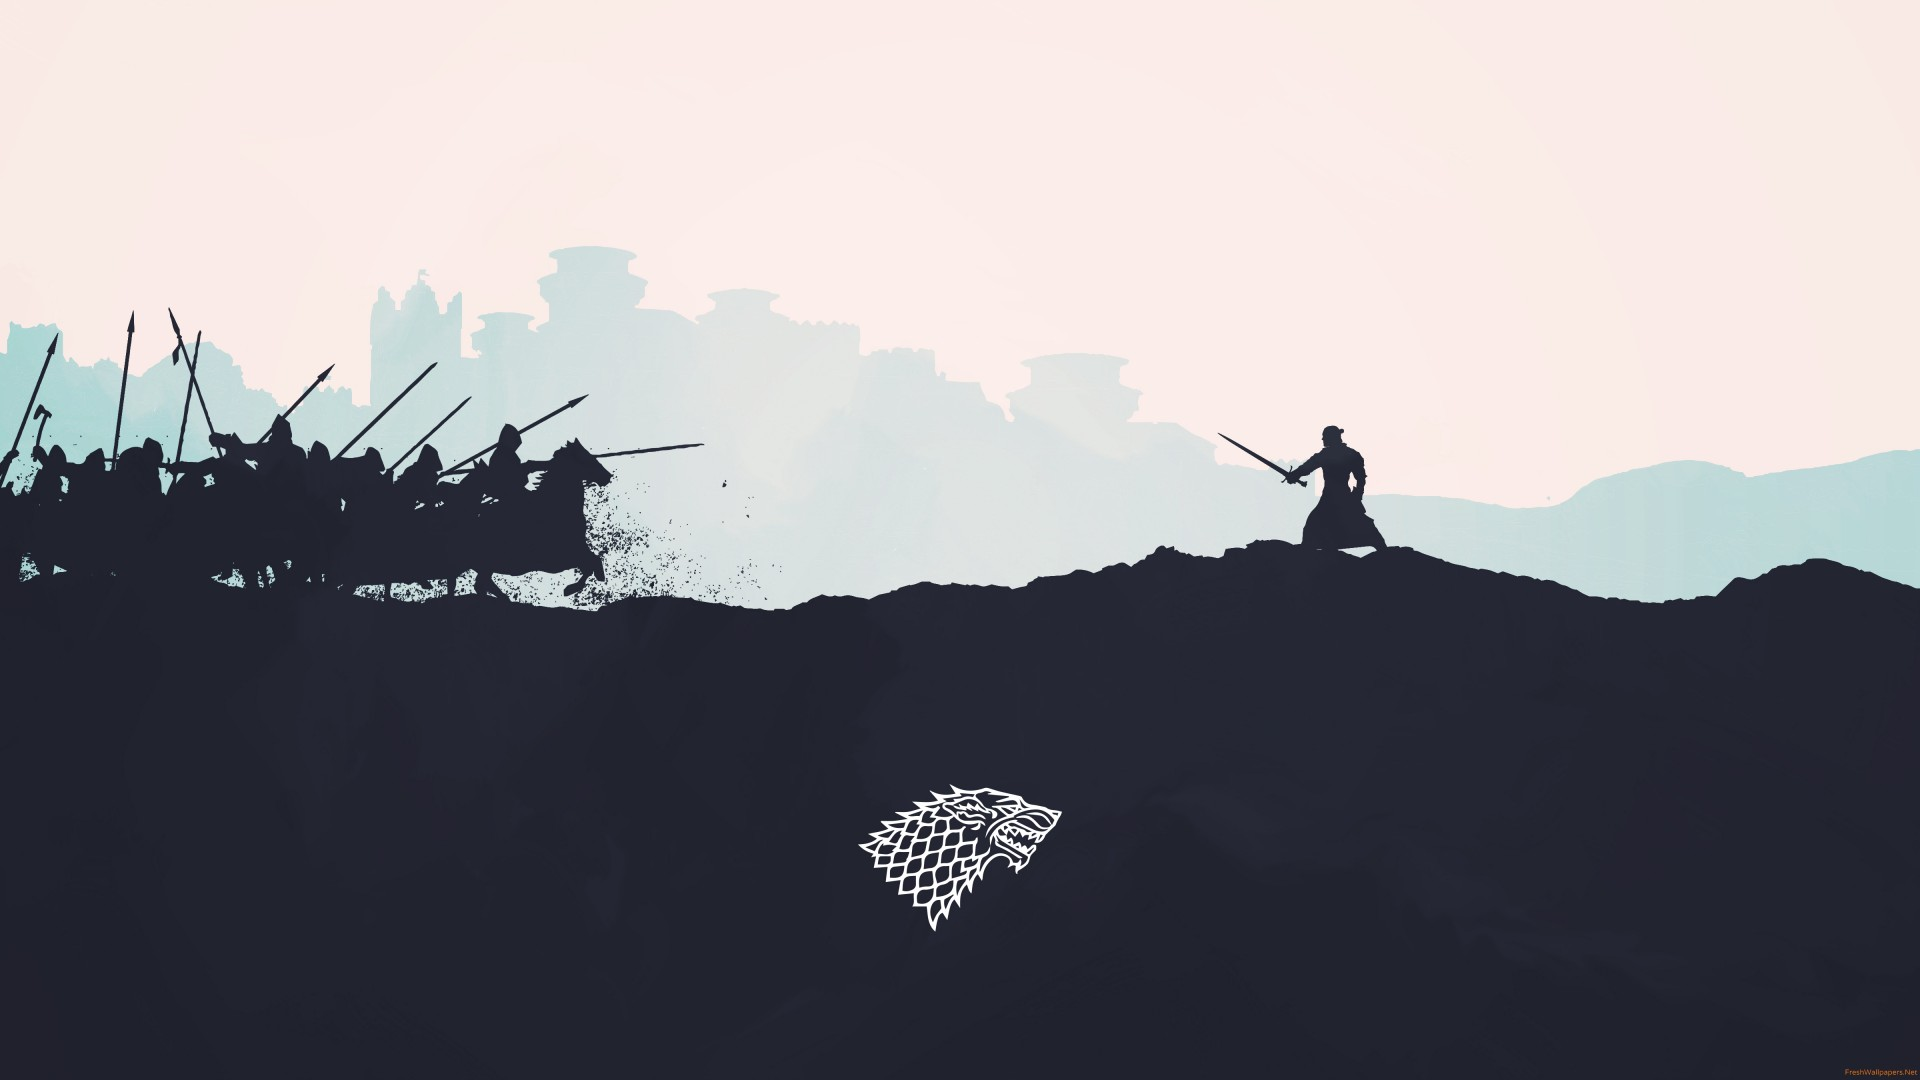 1920x1080 - Minimalist Wallpaper 1920x1080 60